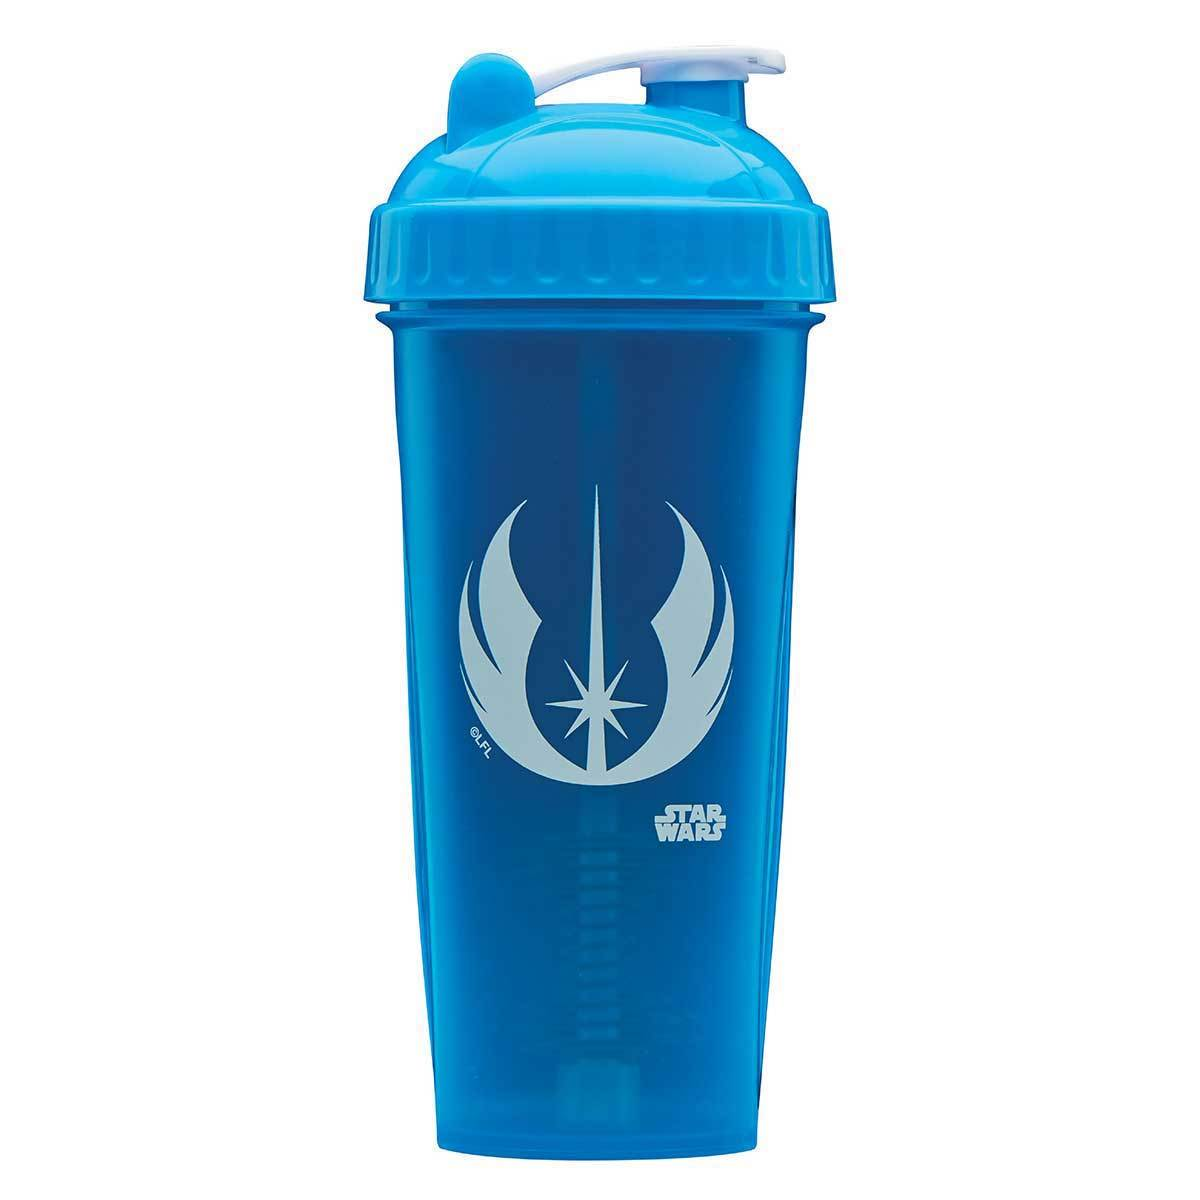 Star Wars Jedi Symbol Shaker Bottle 28oz Fitness Accessories and Apparel PerfectShaker  (1059338977323)